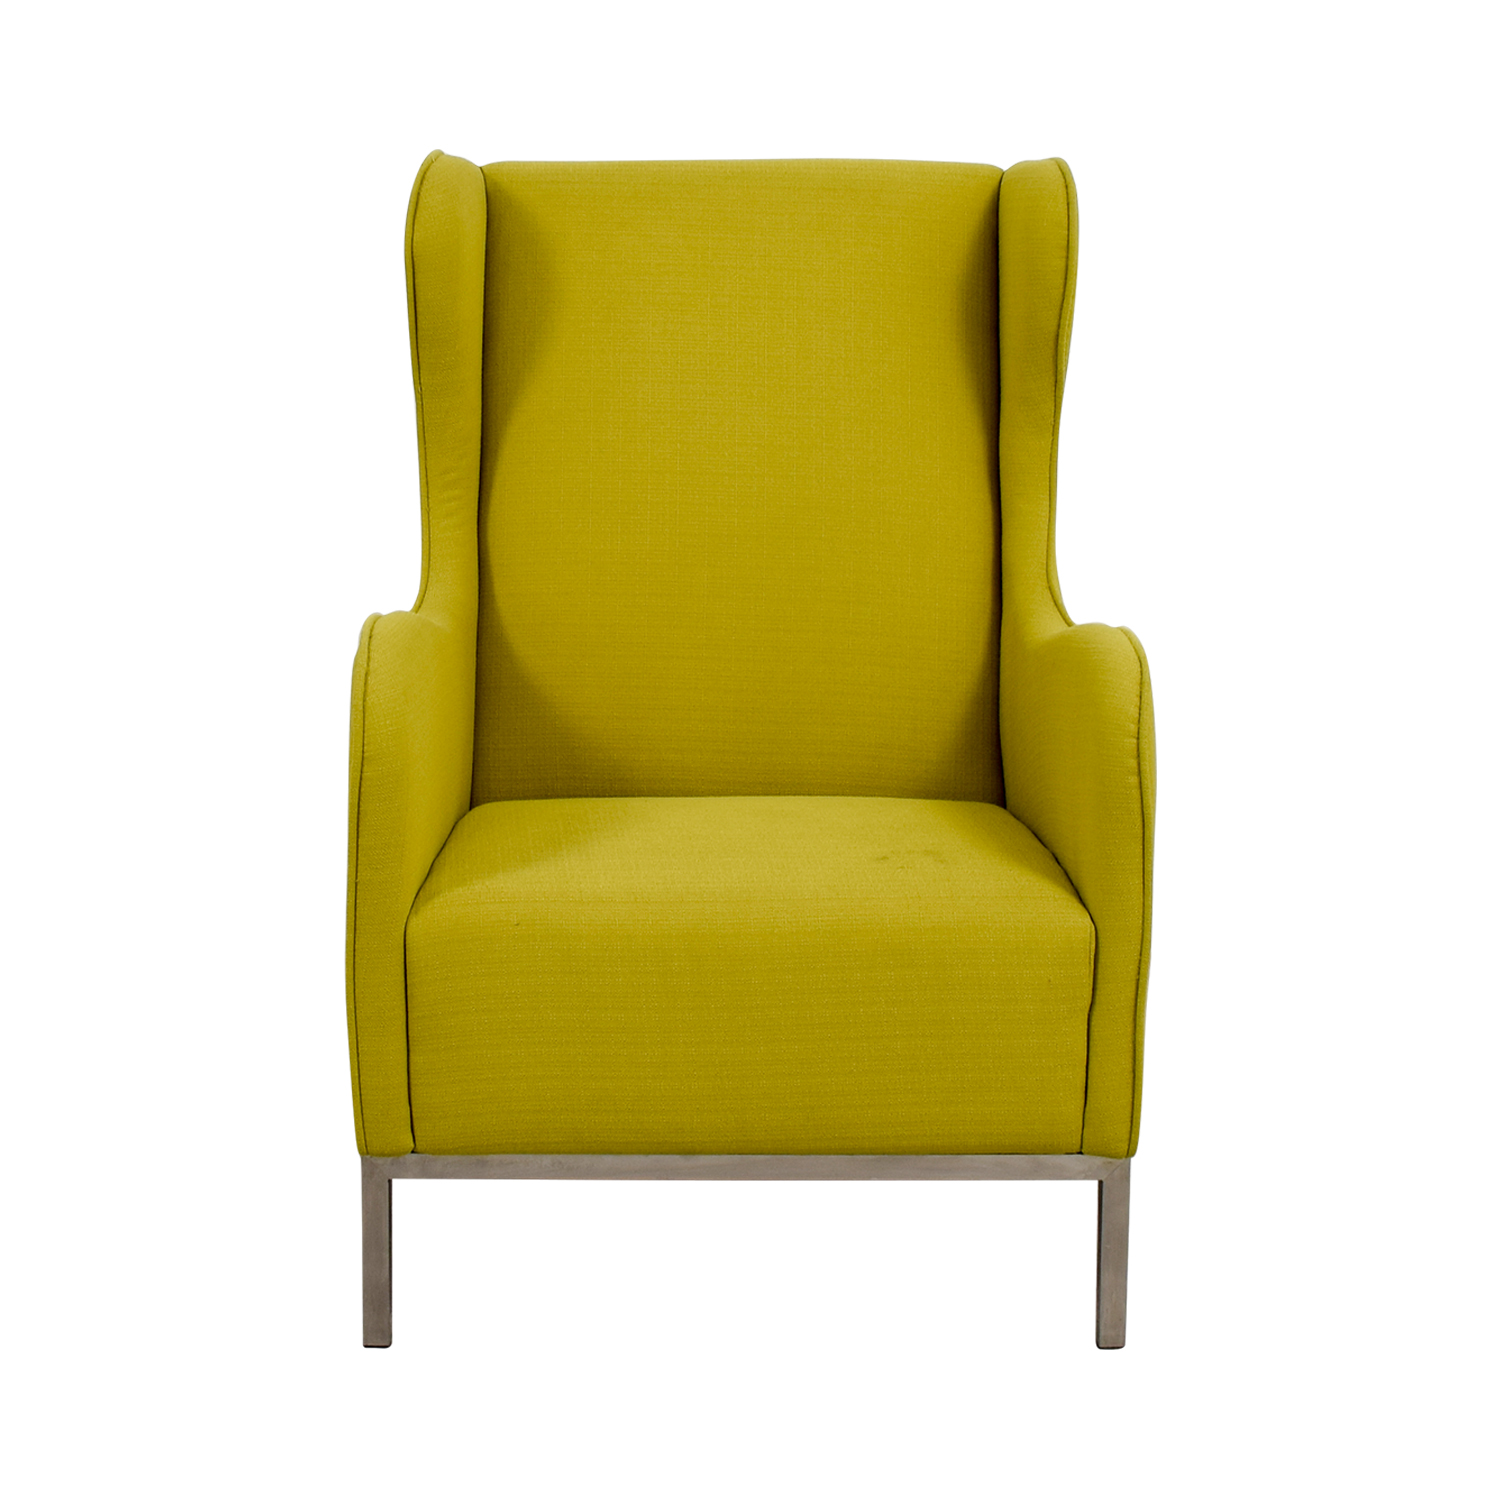 Buy Crate And Barrel Neon Green Accent Chair Crate And Barrel Chairs